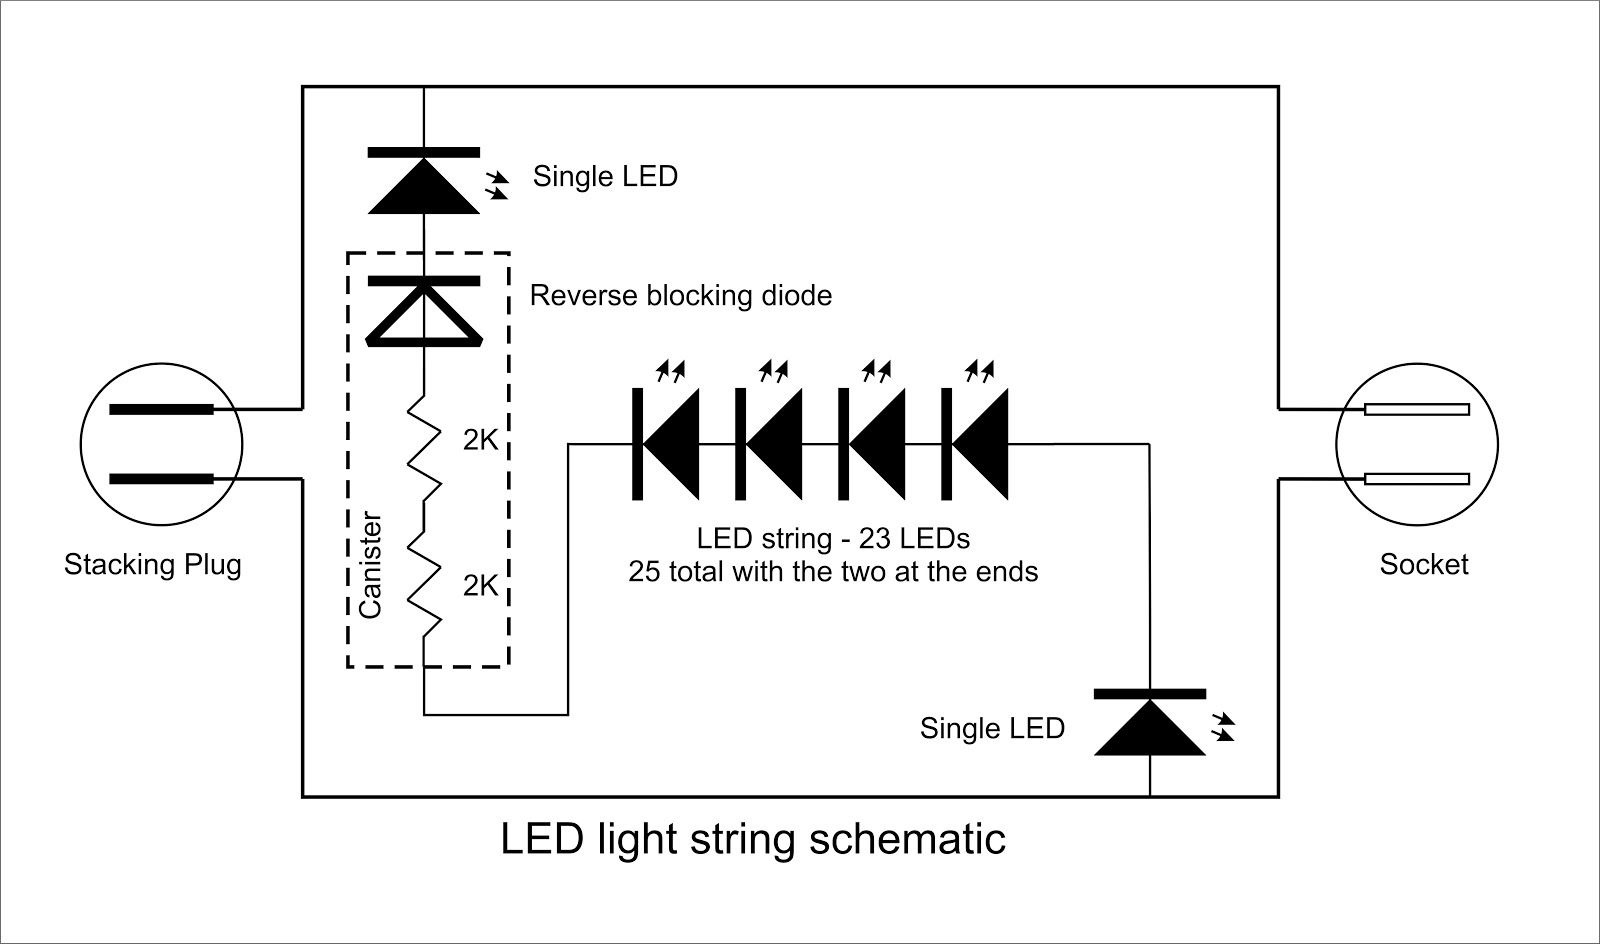 led light string schematic georgesworkshop fixing led string lights led lights wiring diagram at readyjetset.co